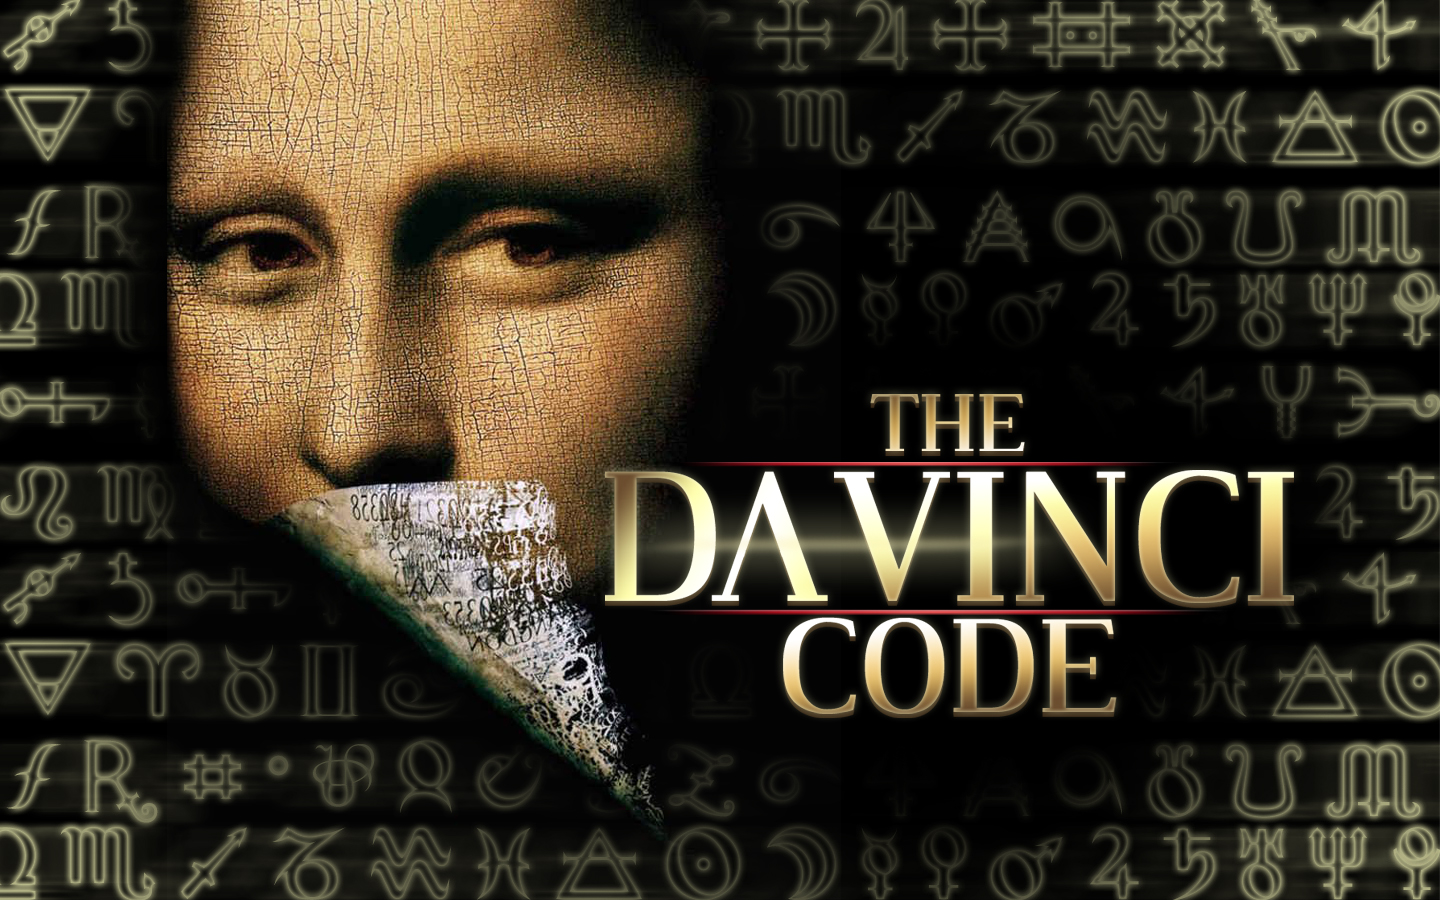 movie review the da vinci code The da vinci code is a bizarre novel about a scandal in the catholic church it was written by dan brown later, ron howard made it into a movie it was.